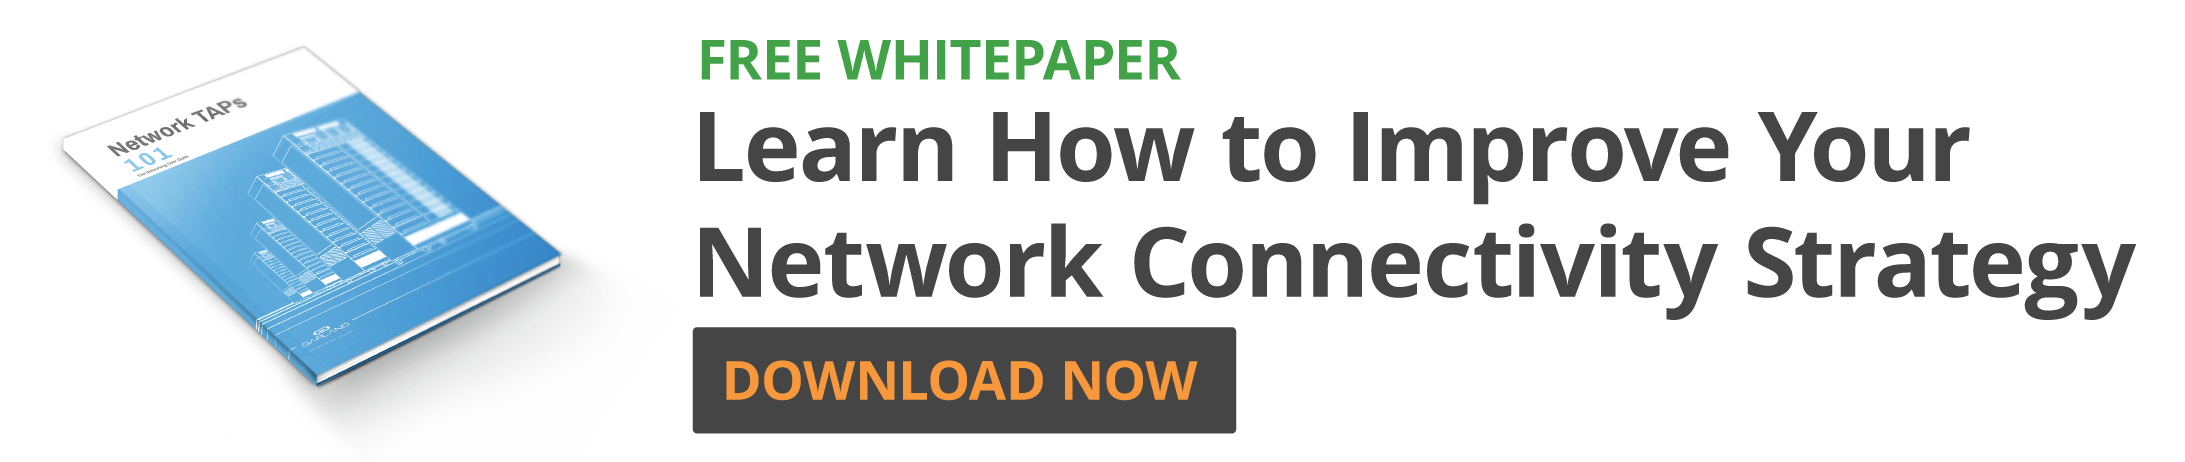 Learn How to Improve Your Network Connectivity Strategy DOWNLOAD NOW